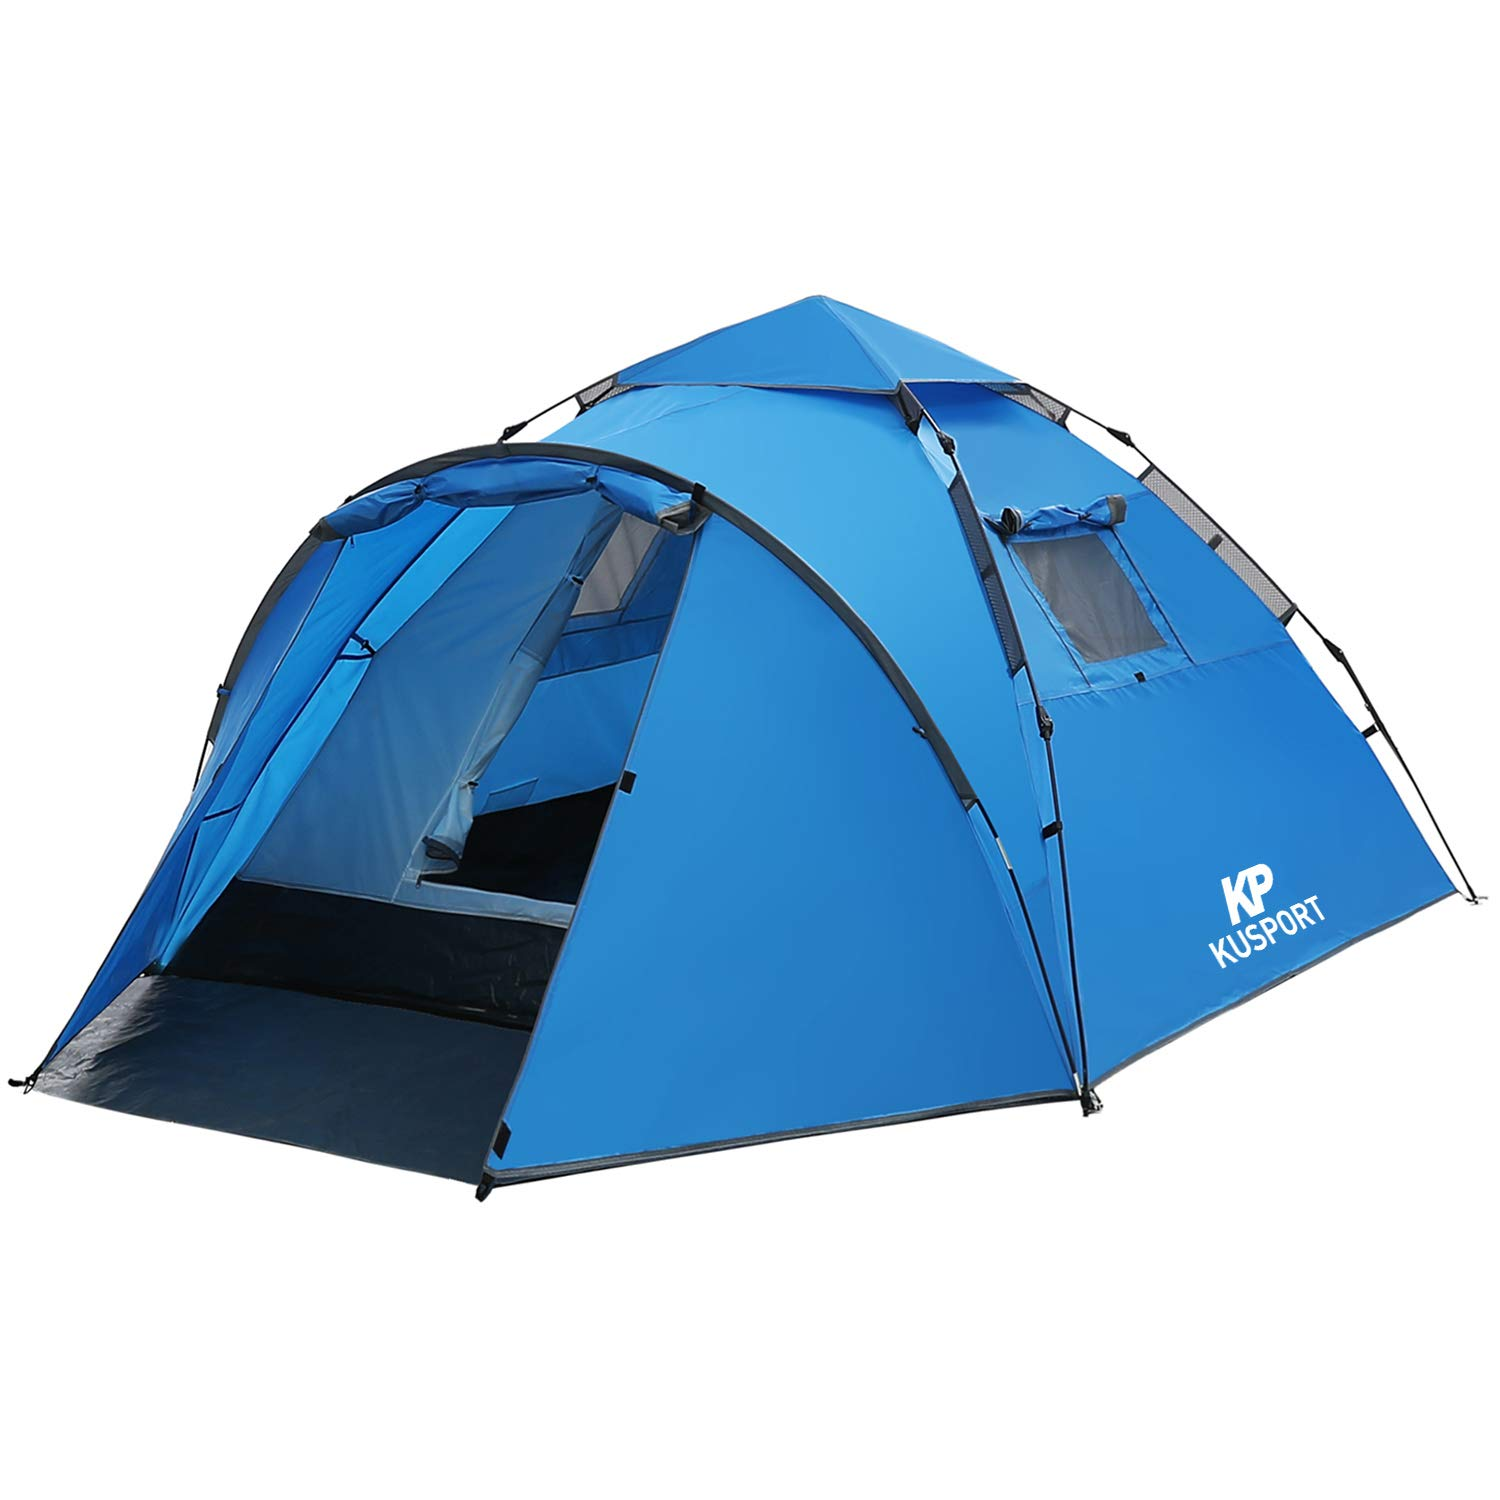 Kusport ZP05, 2-3 Person Rainproof Automatic Hydraulic Backpack Tent for Camping Outdoor Beach Hiking Travel, Blue by Kusport